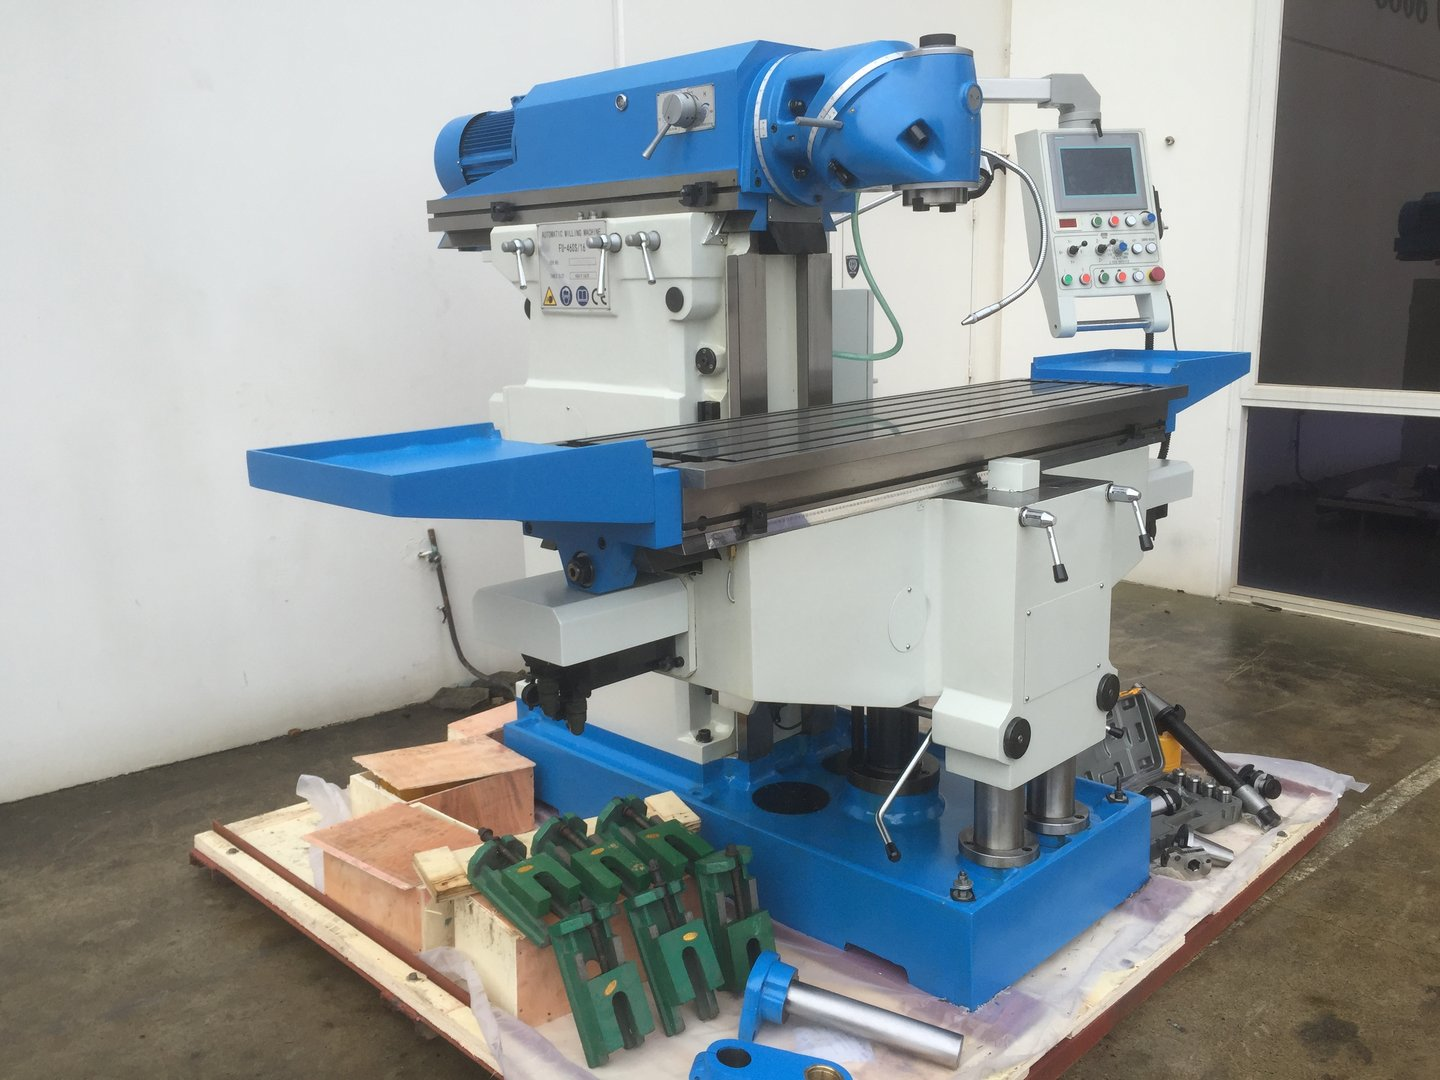 FU-460s-16. Universal Mill 1635mm x 460mm Table, ISO 50 Vertical Spindle, 3 Axis DRO